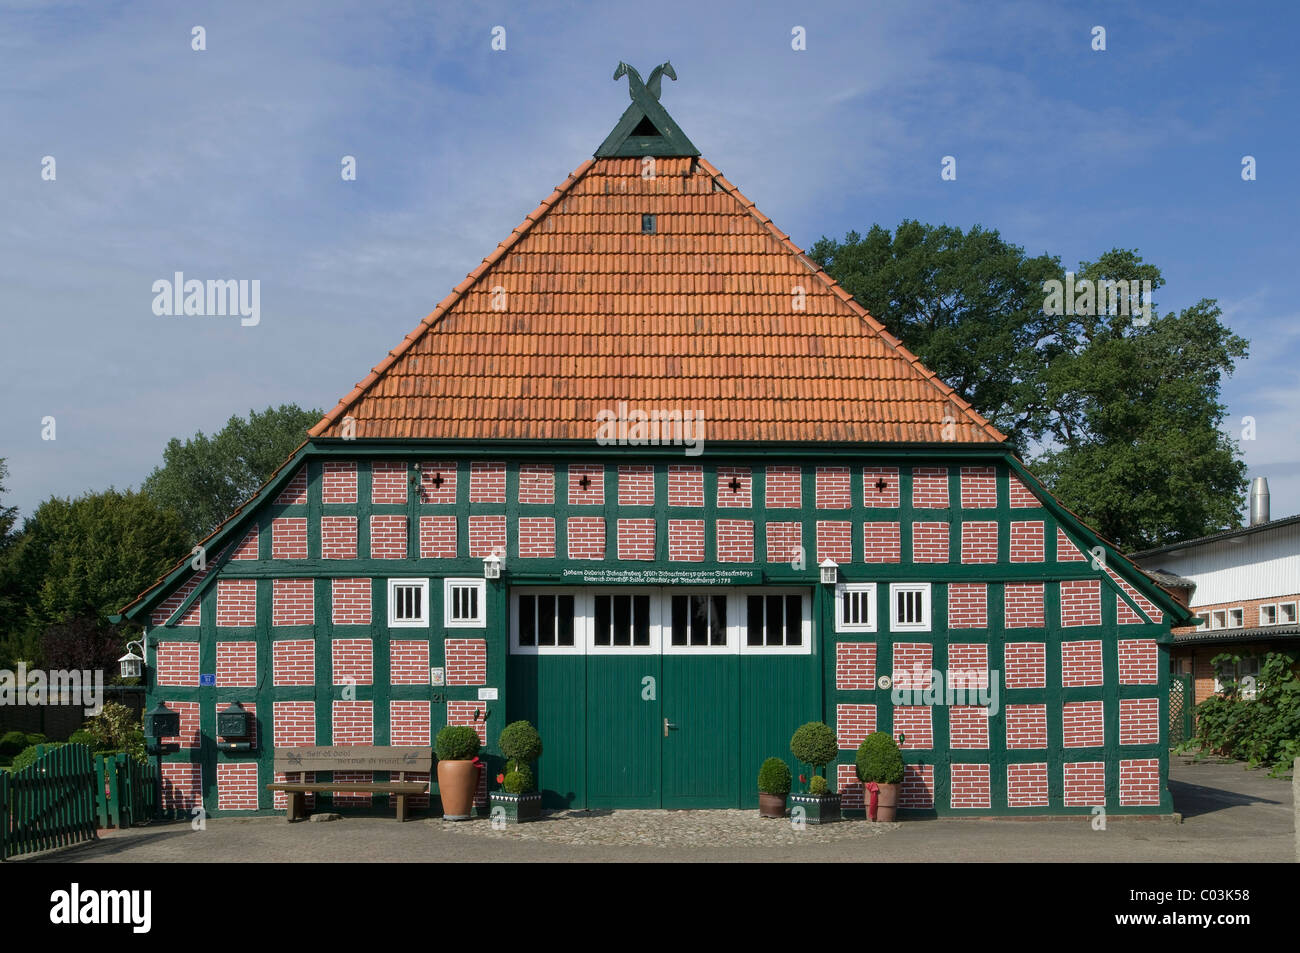 Amtsschreibershof, scribe's building, built in 1793, restored half-timbered building, Wuemme Rothenburg district, - Stock Image